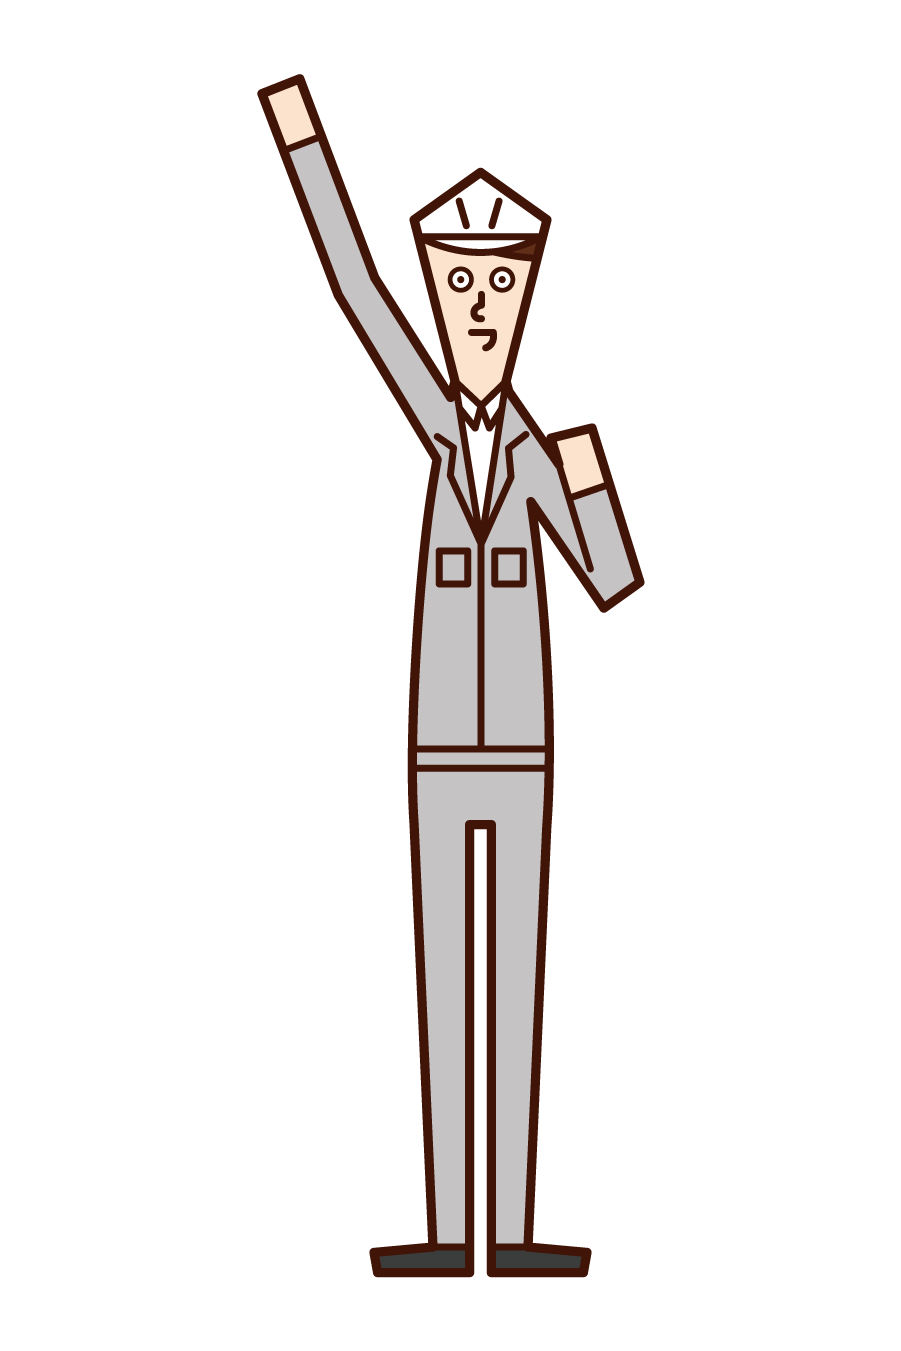 Illustration of Aei-oh (man), a field supervisor who raises his fist high